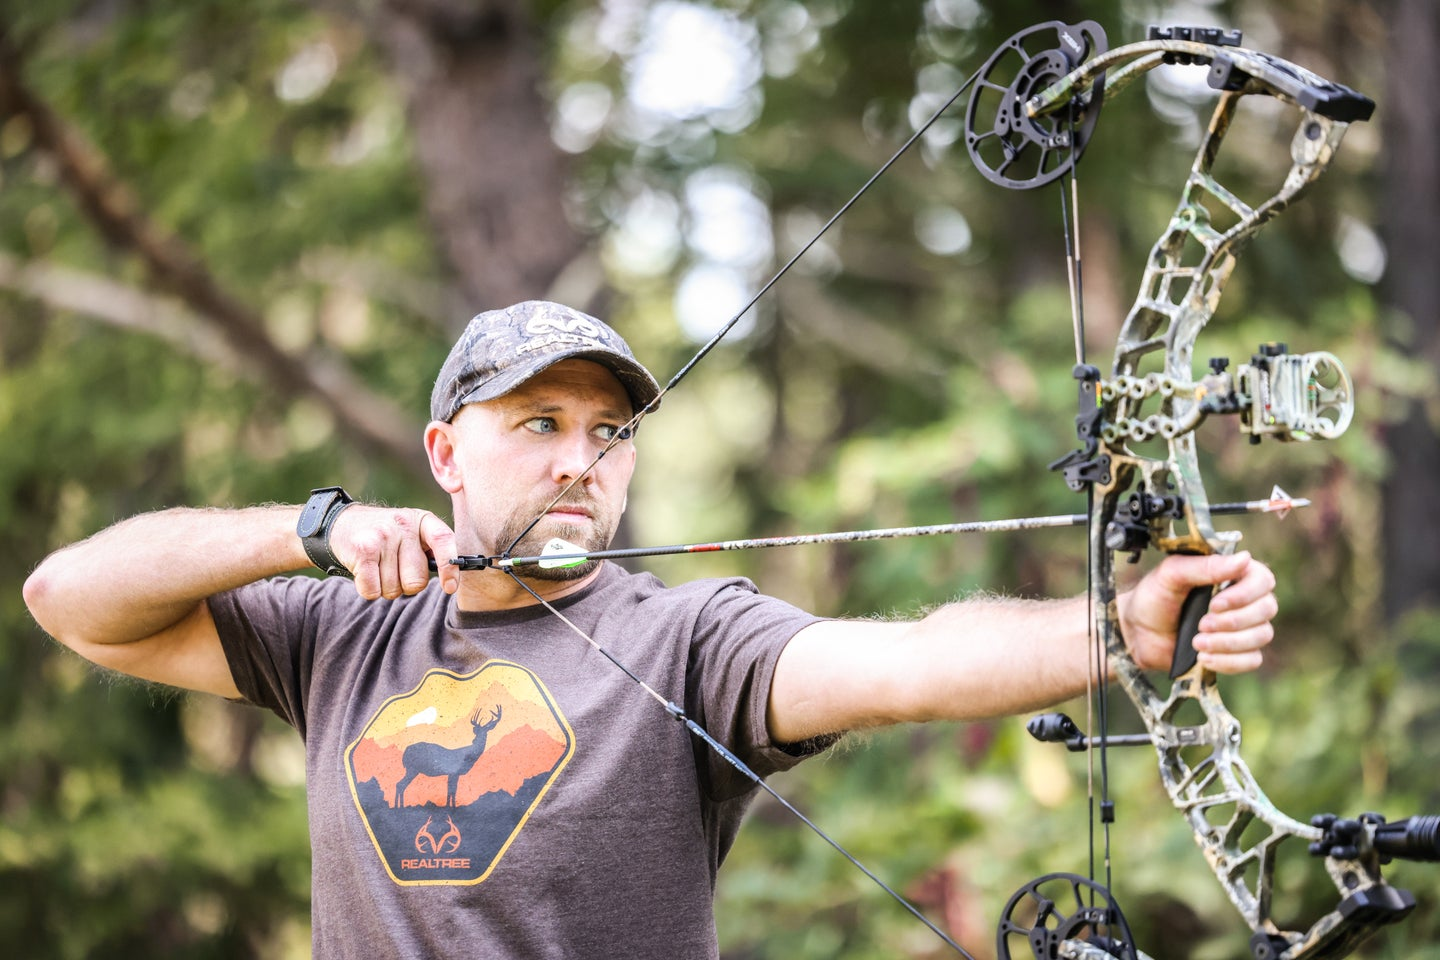 Will Brantley shoots Hoyt Ventum compound bow